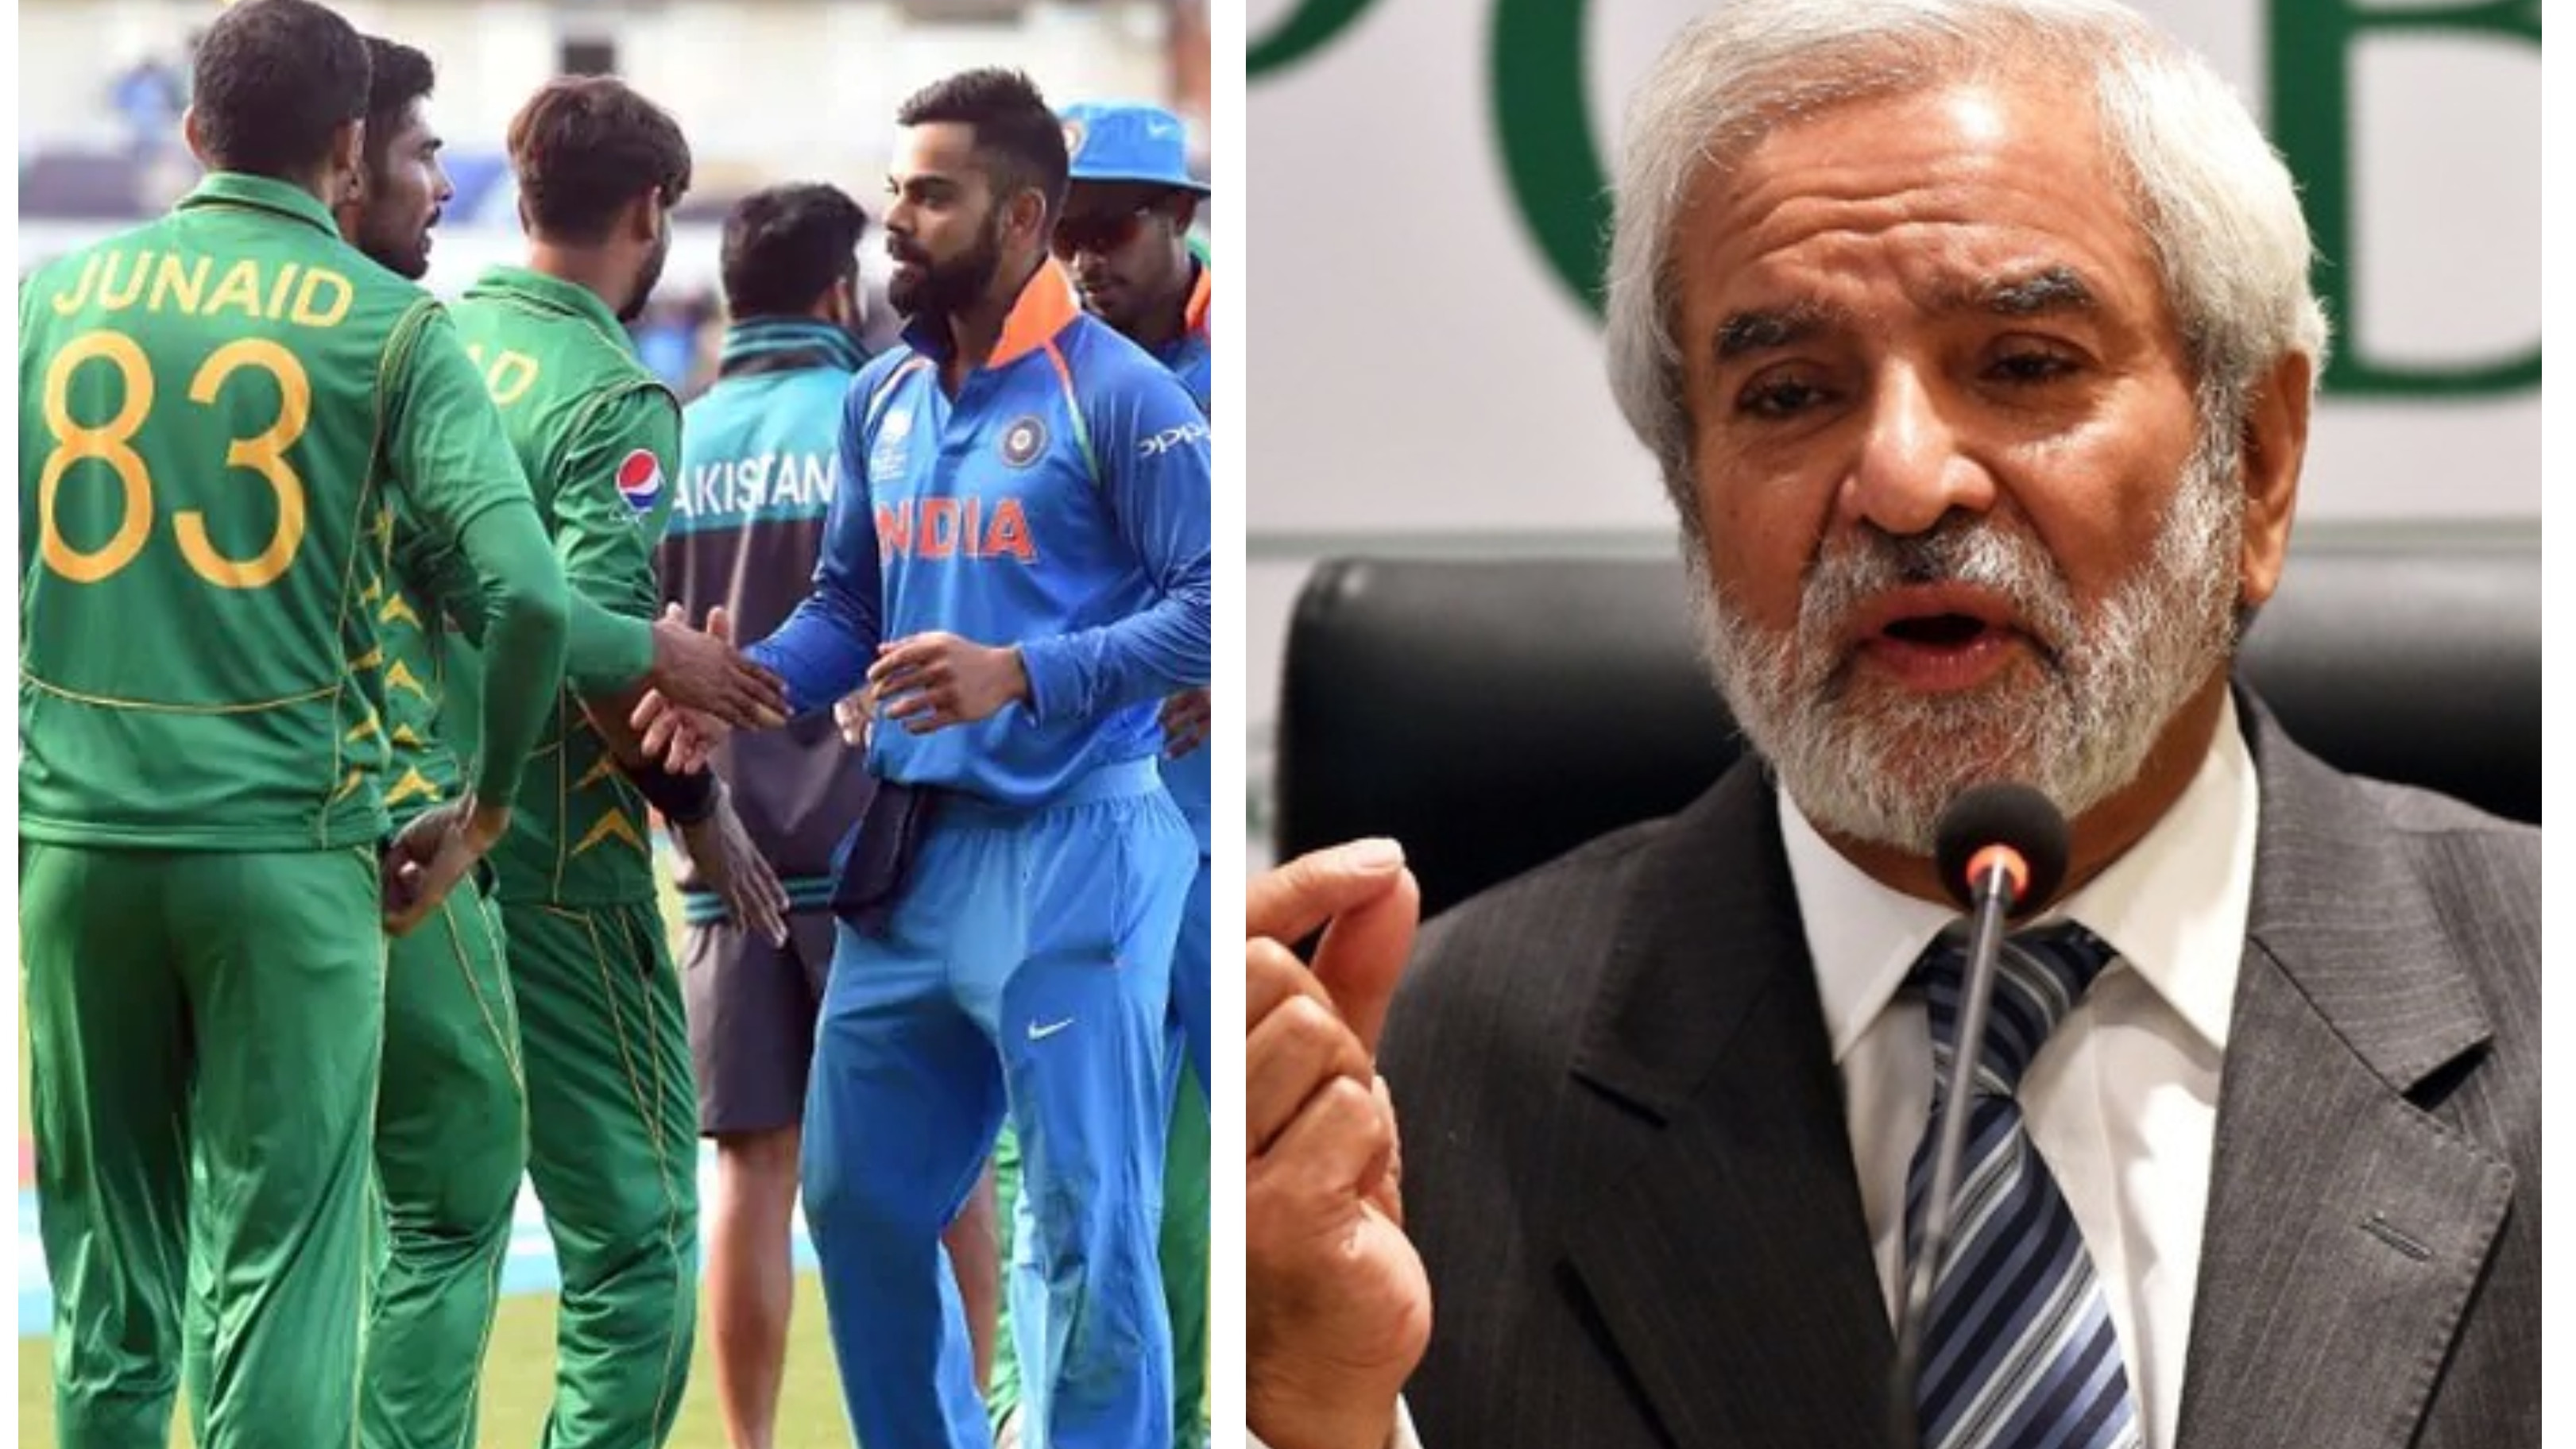 We must learn to keep sports and politics separate, says PCB chief Ehsan Mani